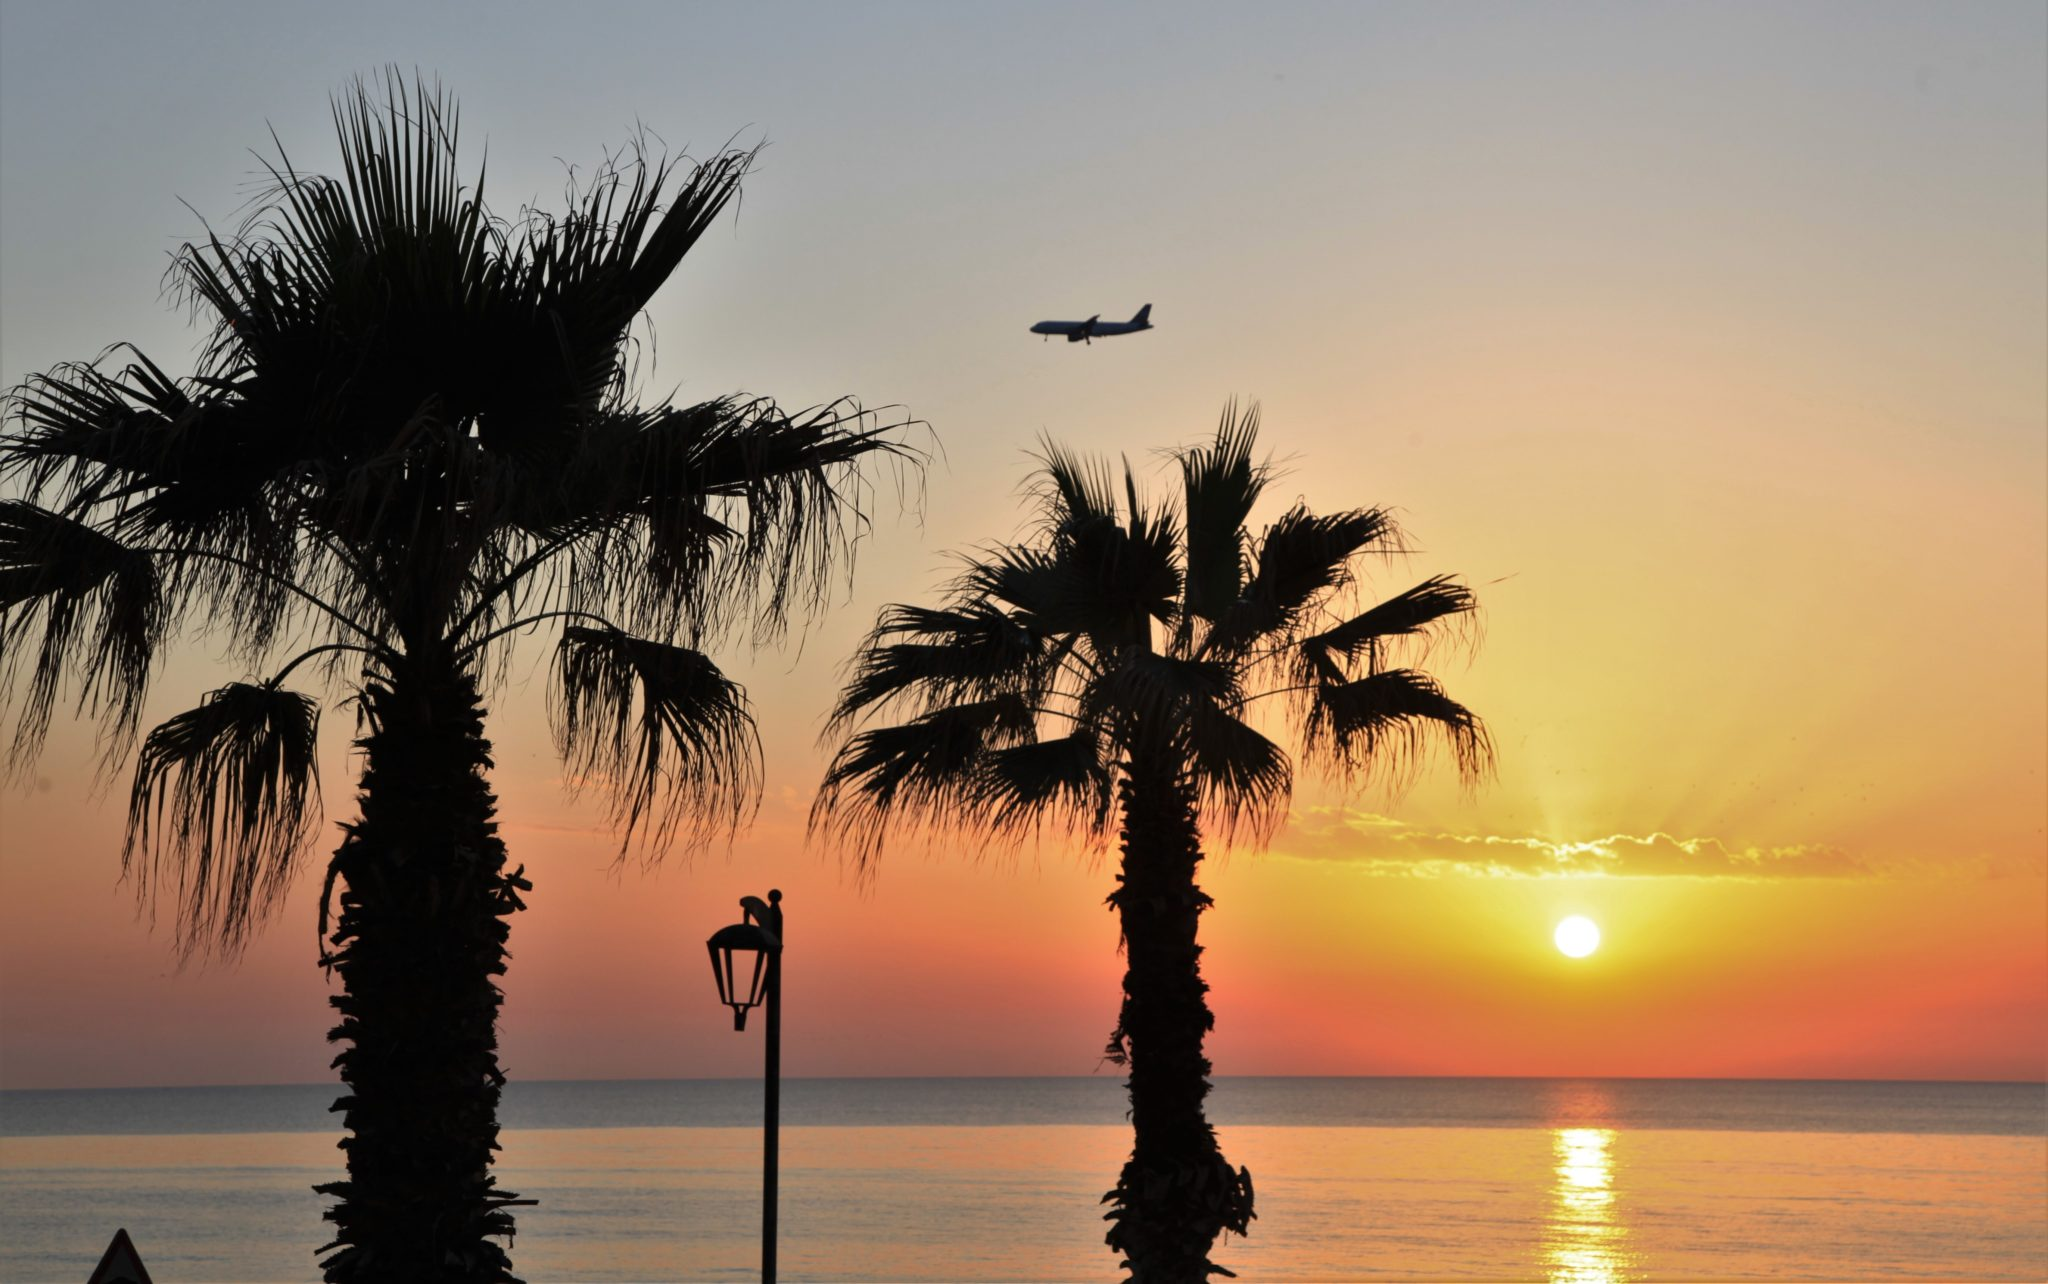 A plane flies over the sea during the sunset in Beirut, Lebanon